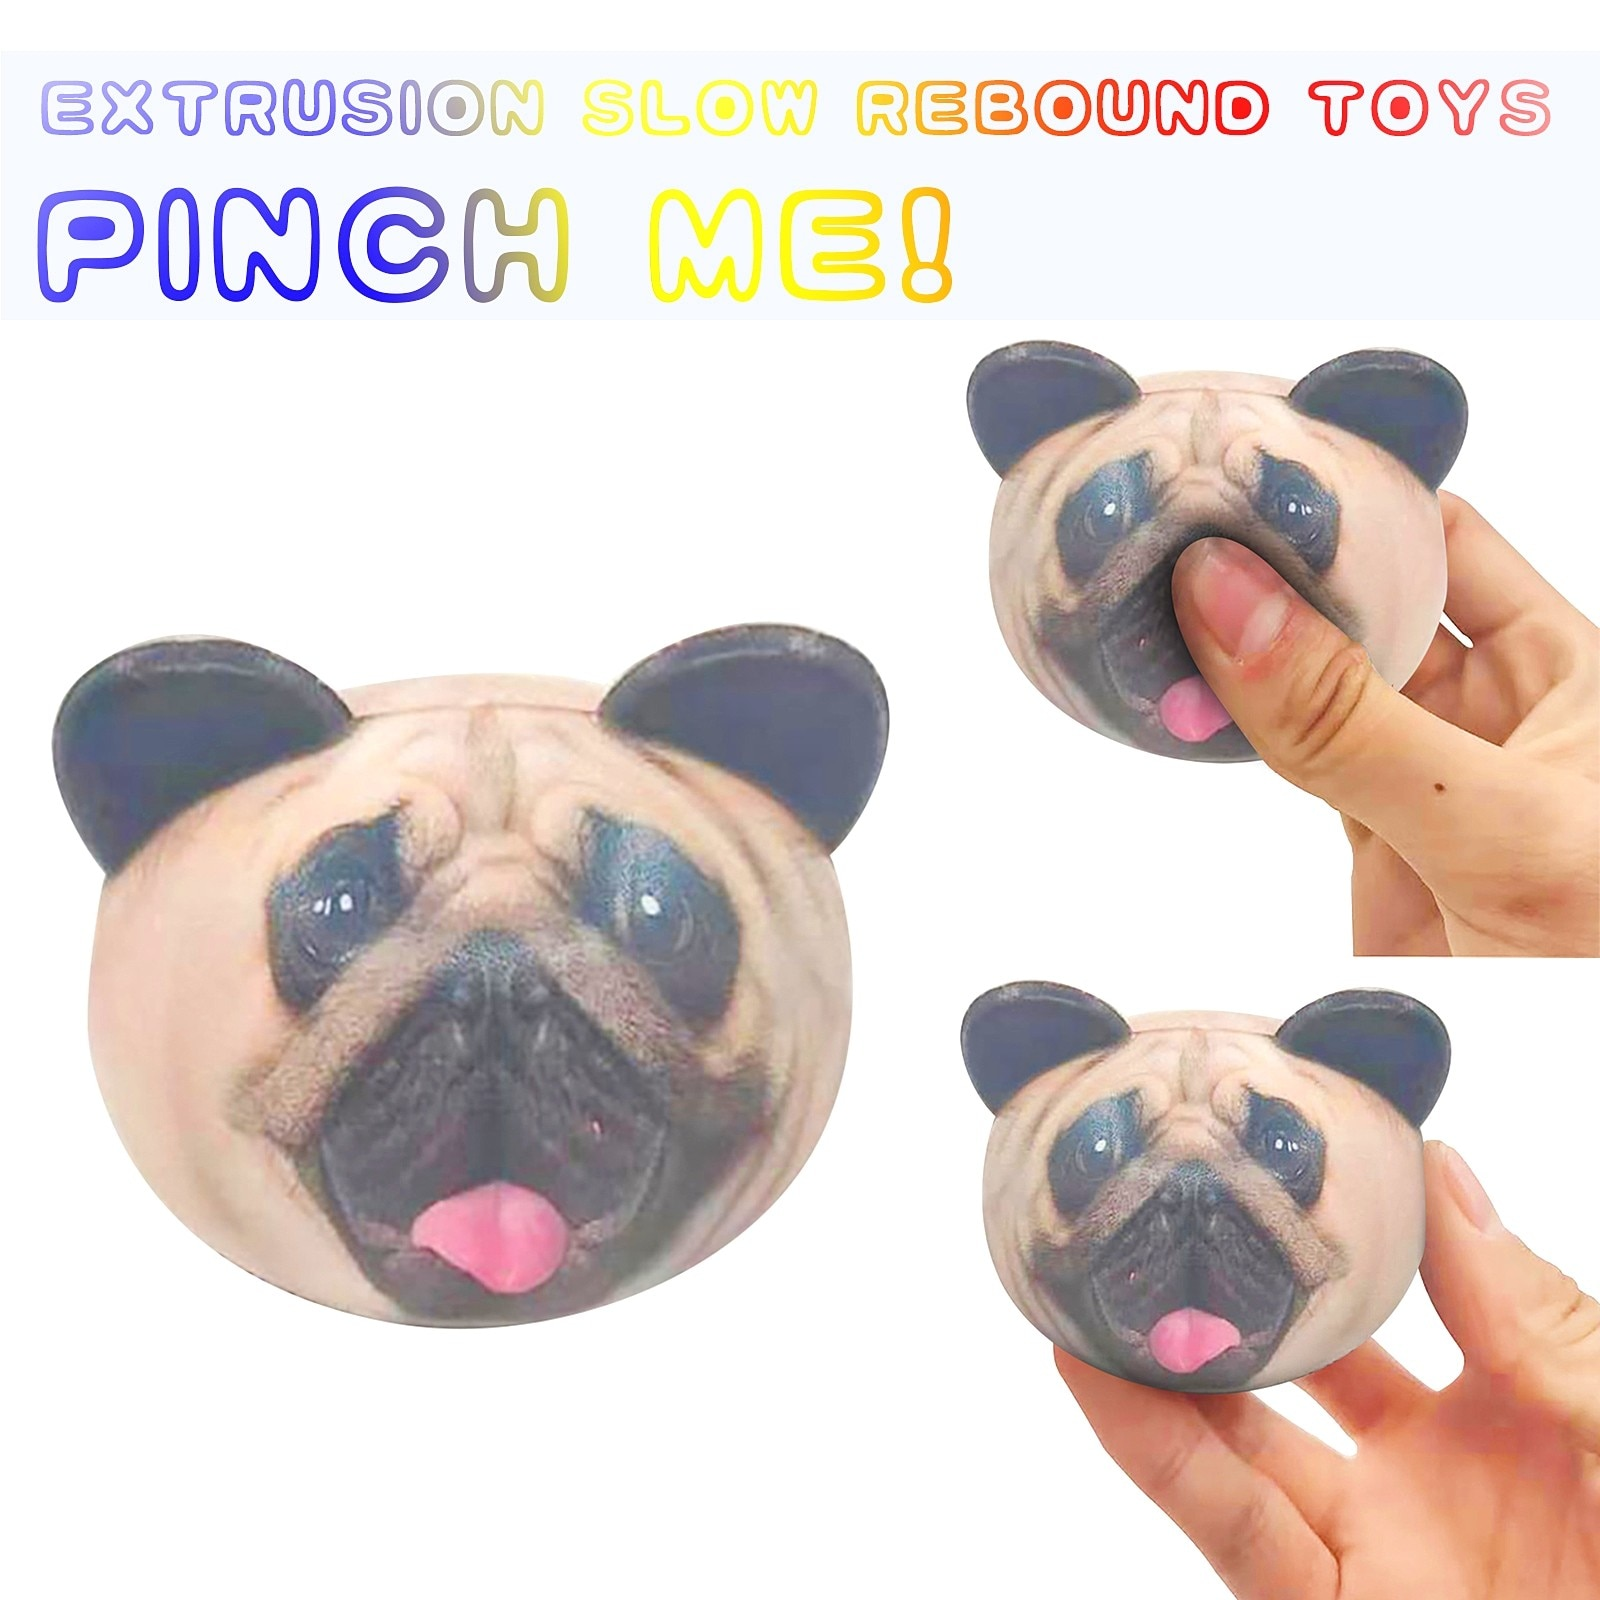 New Fashion Fidget Toys Dog Decompression Slow Re bound Animal Head Toy Dolls антистресс